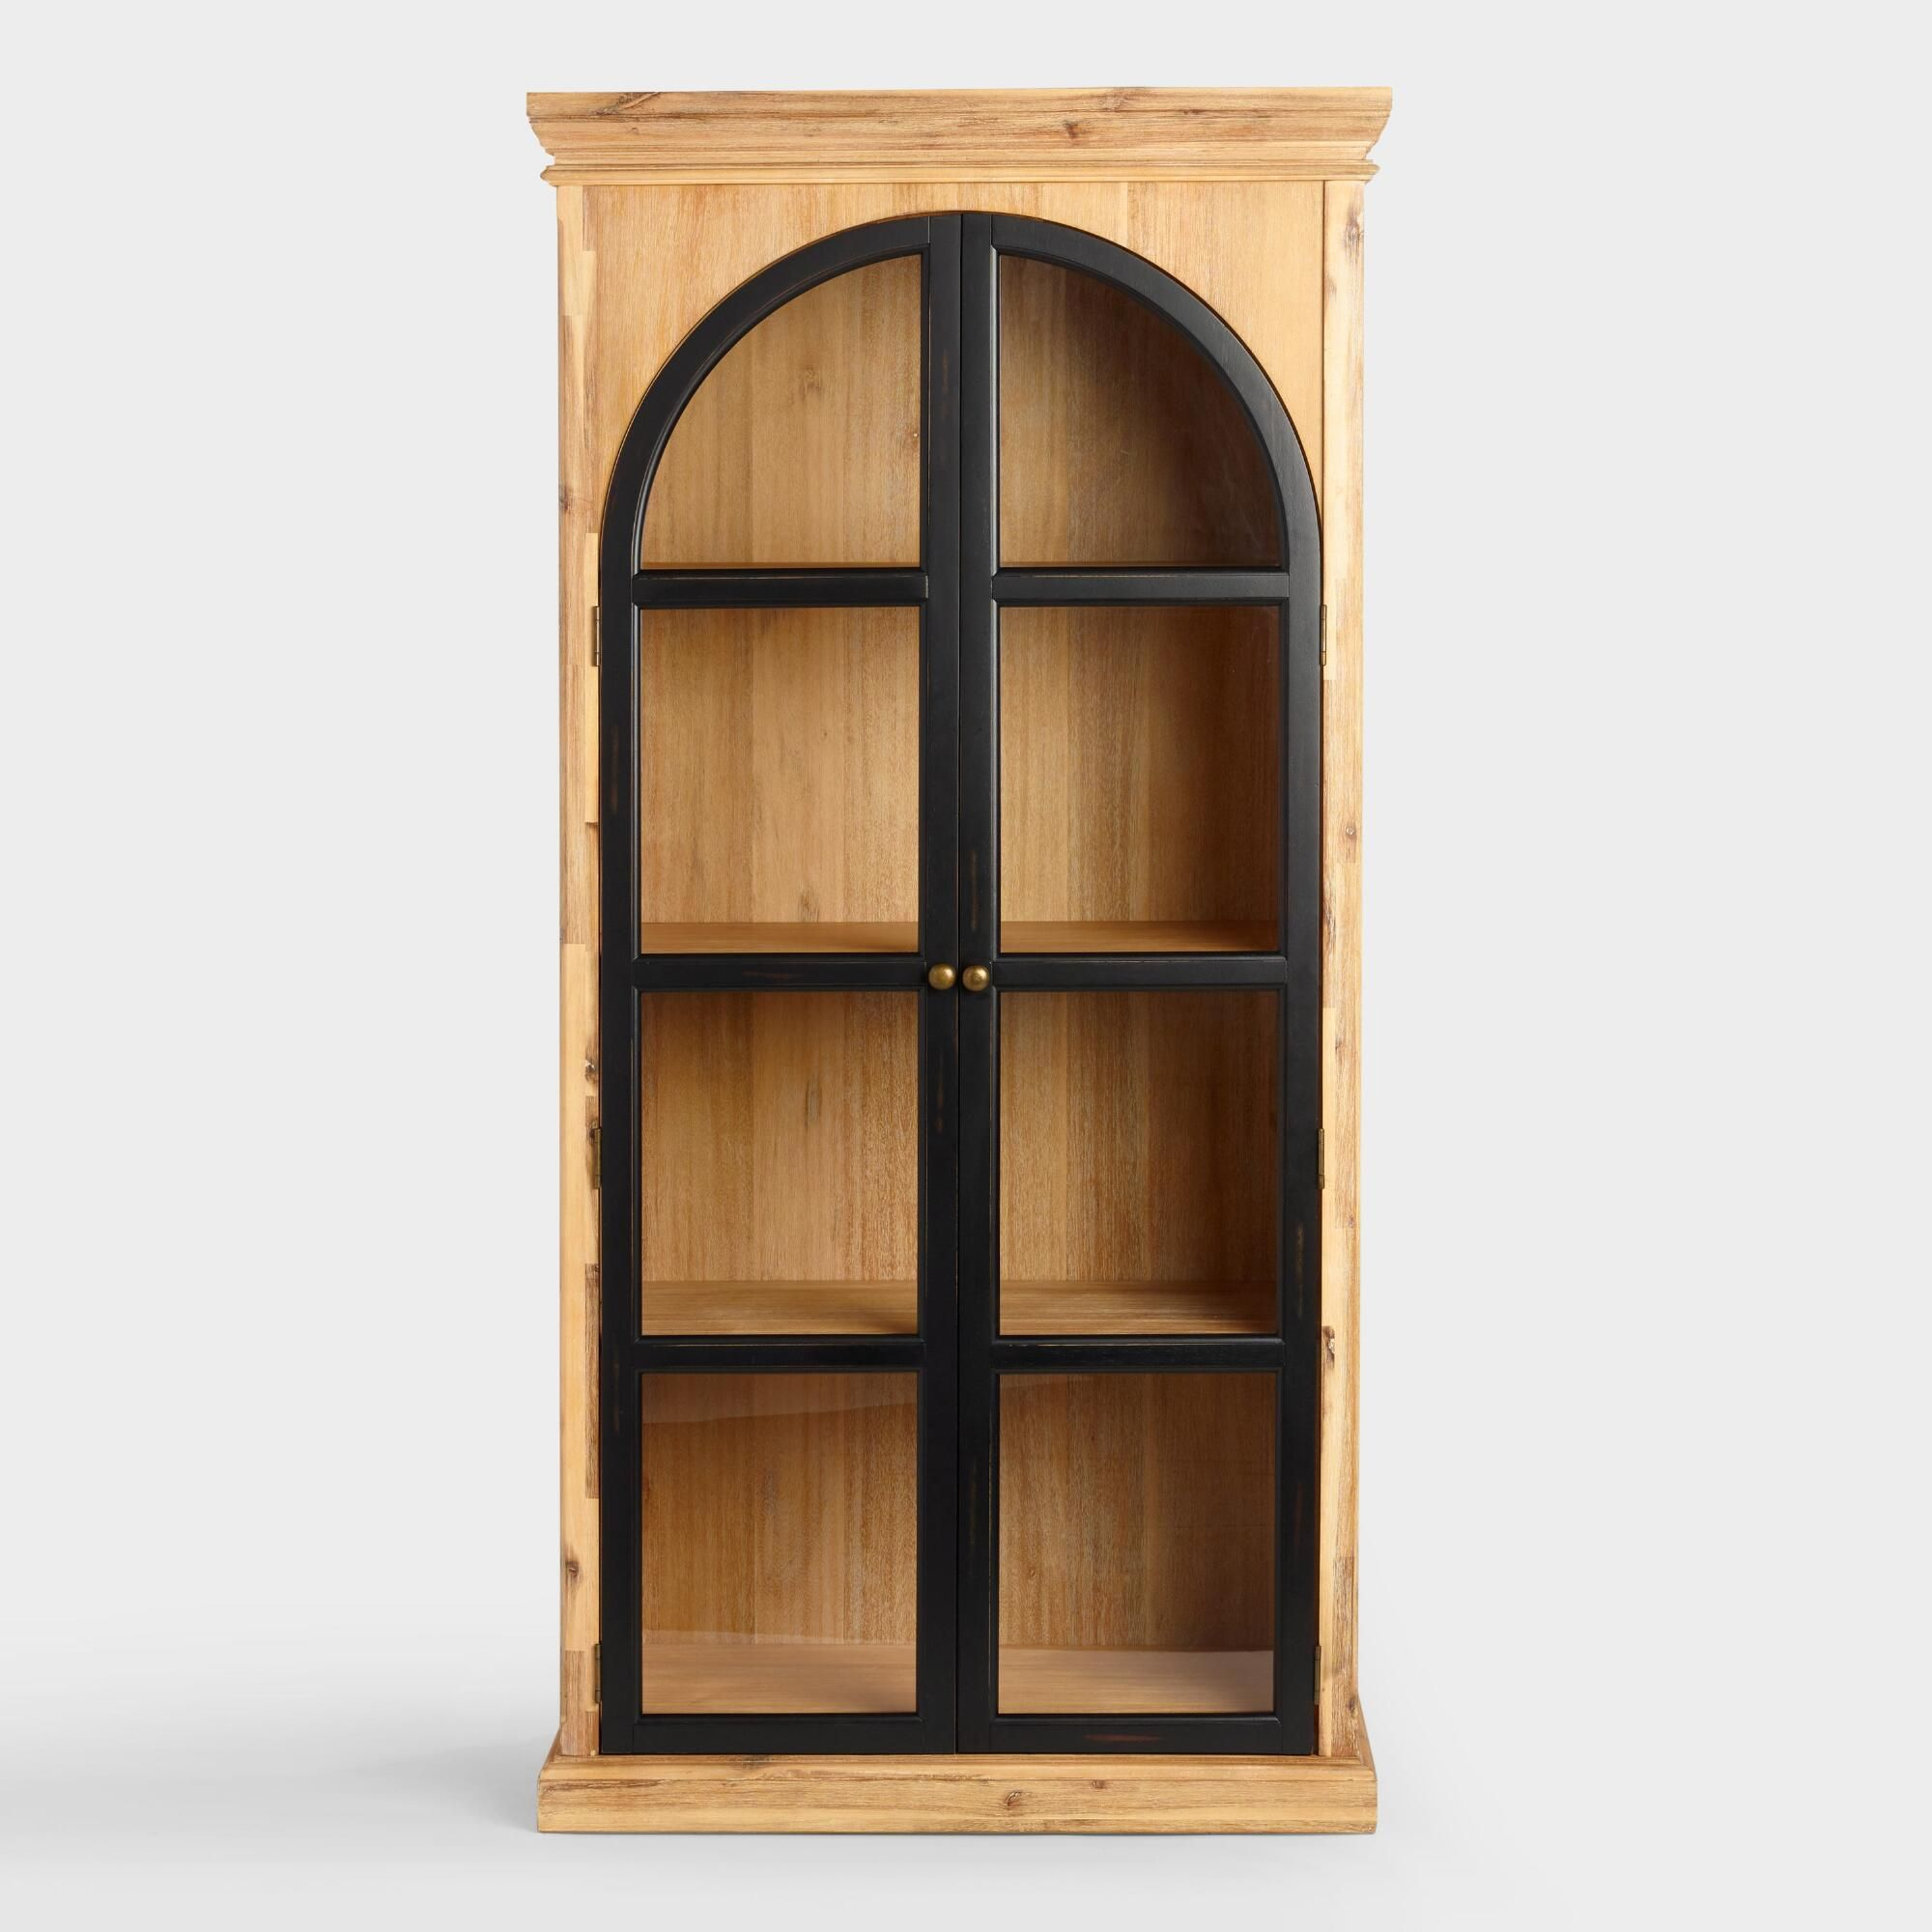 Accented with top and bottom crown molding our curio cabinet takes